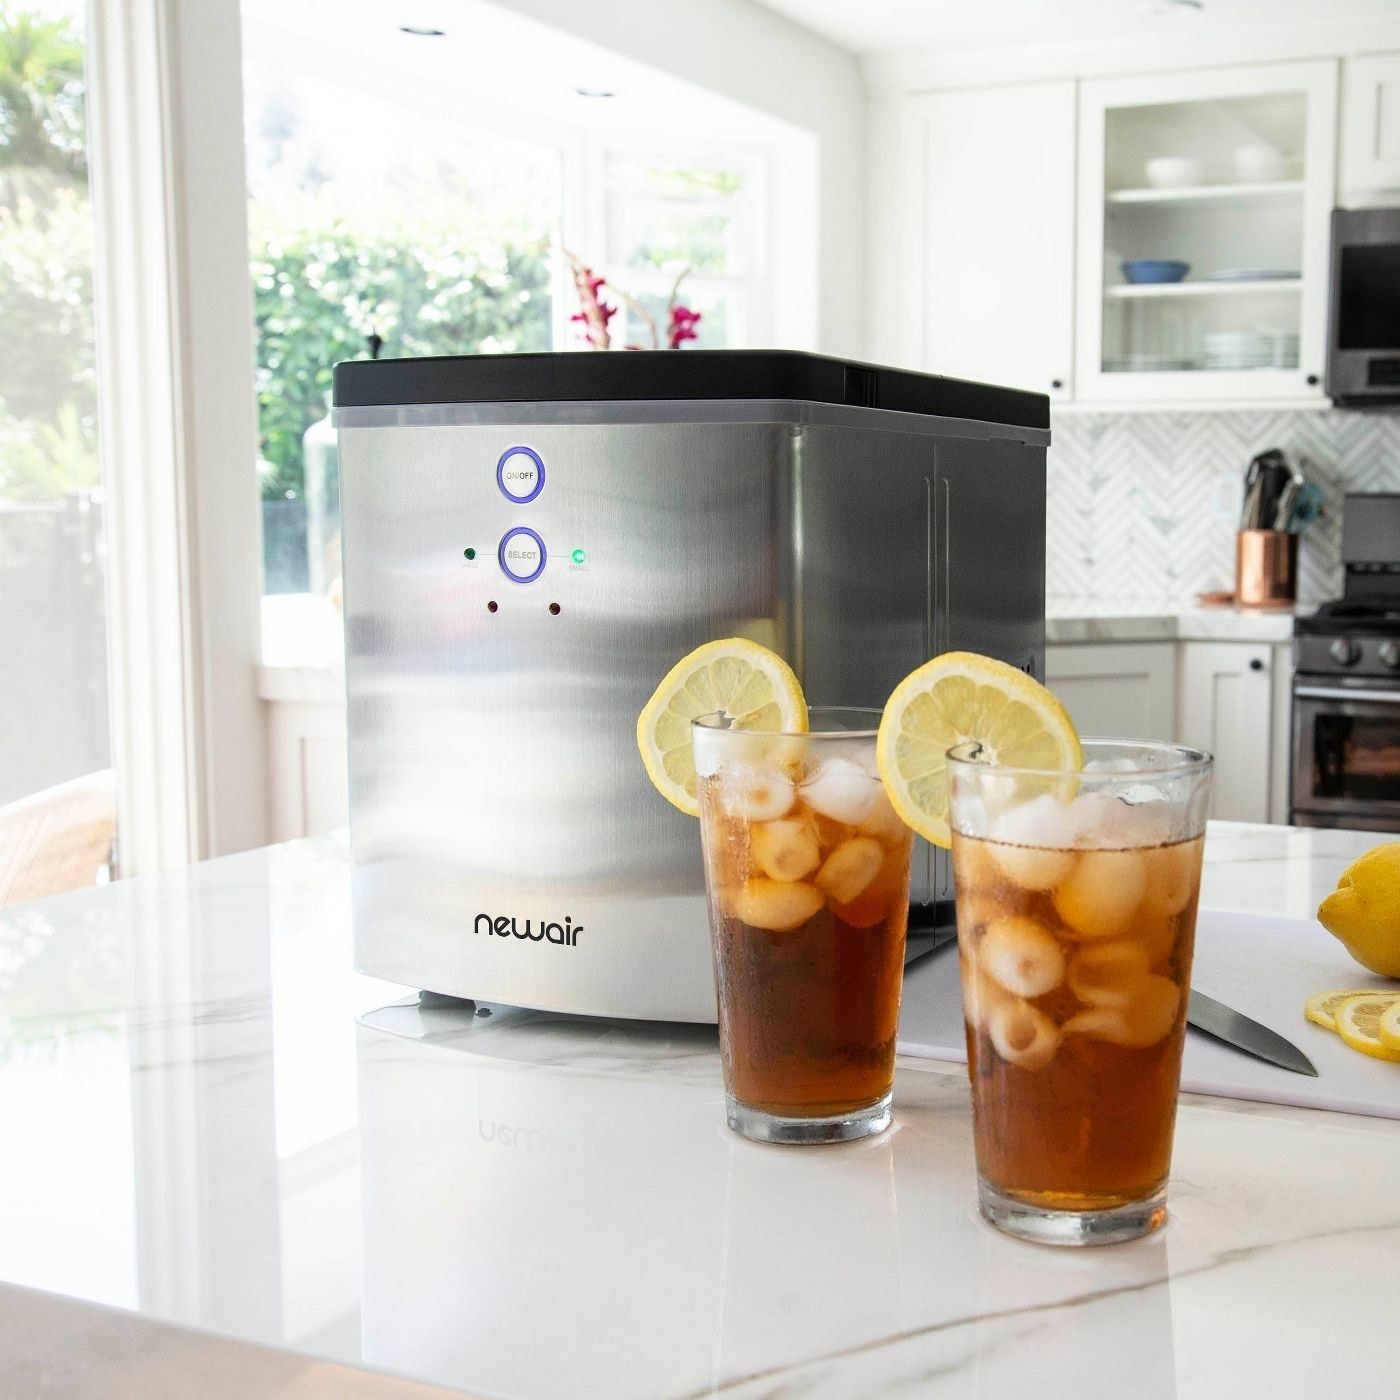 The portable ice maker